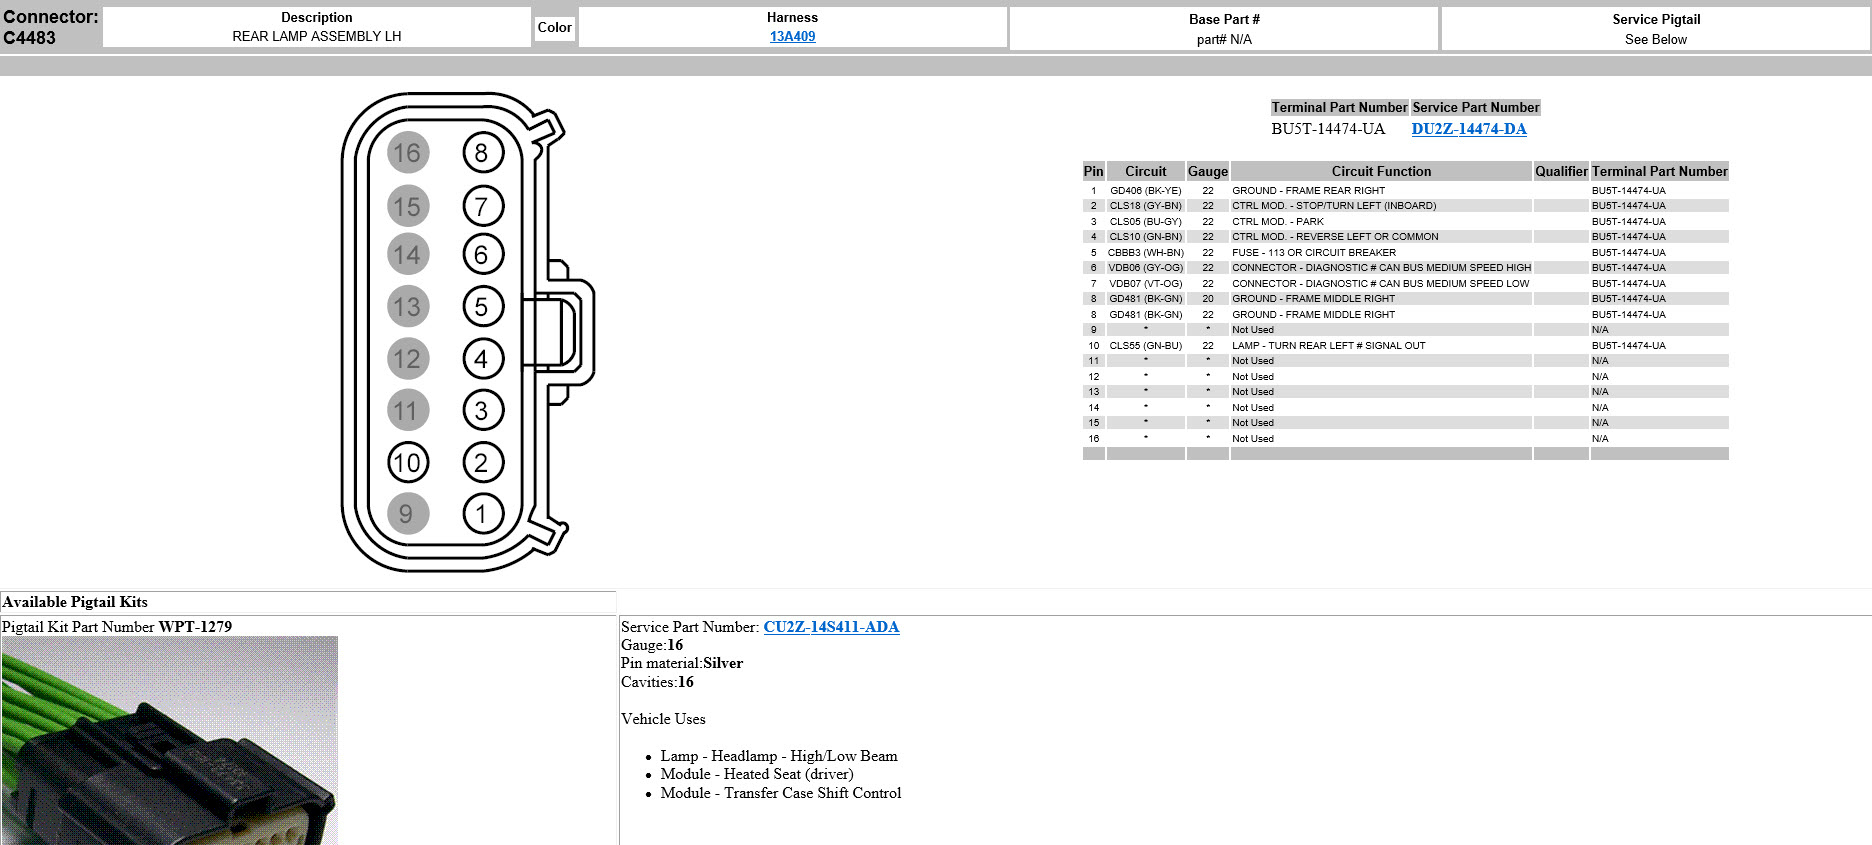 Led & Bliss Tail Light Wiring Diagram? - Ford F150 Forum - Community - Brake Light Wiring Diagram